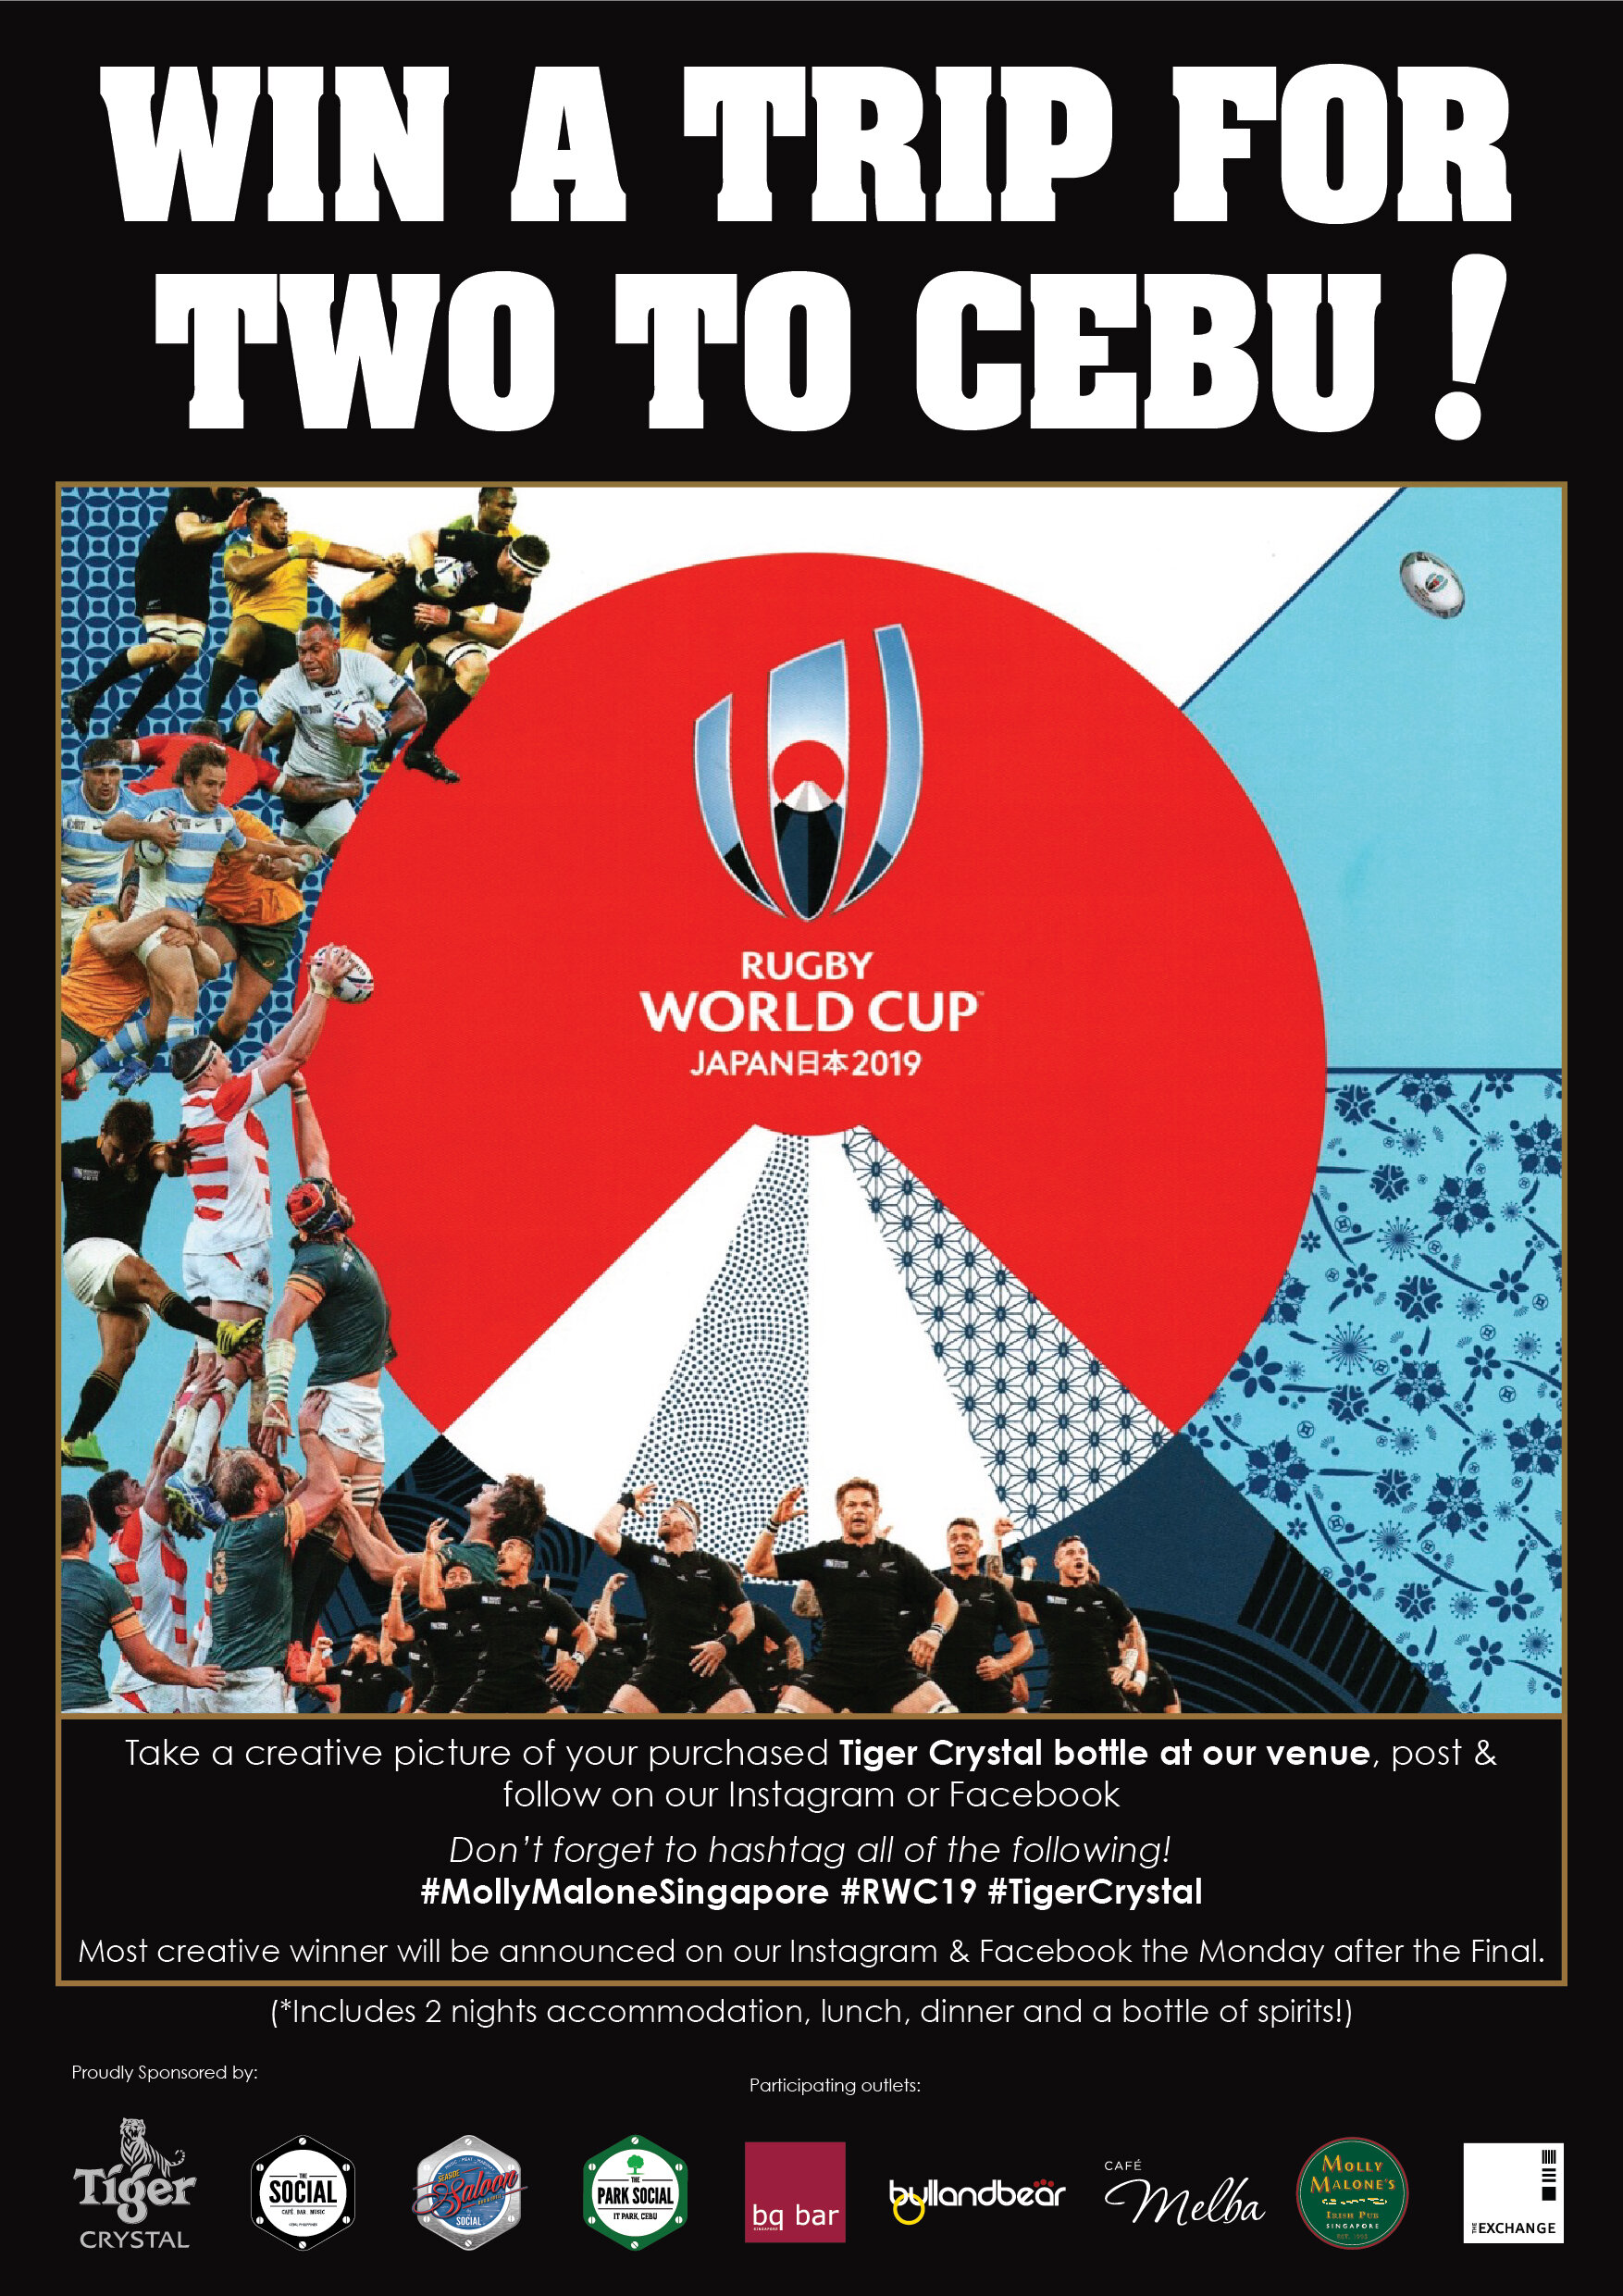 Win a Trip for Two to Cebu!